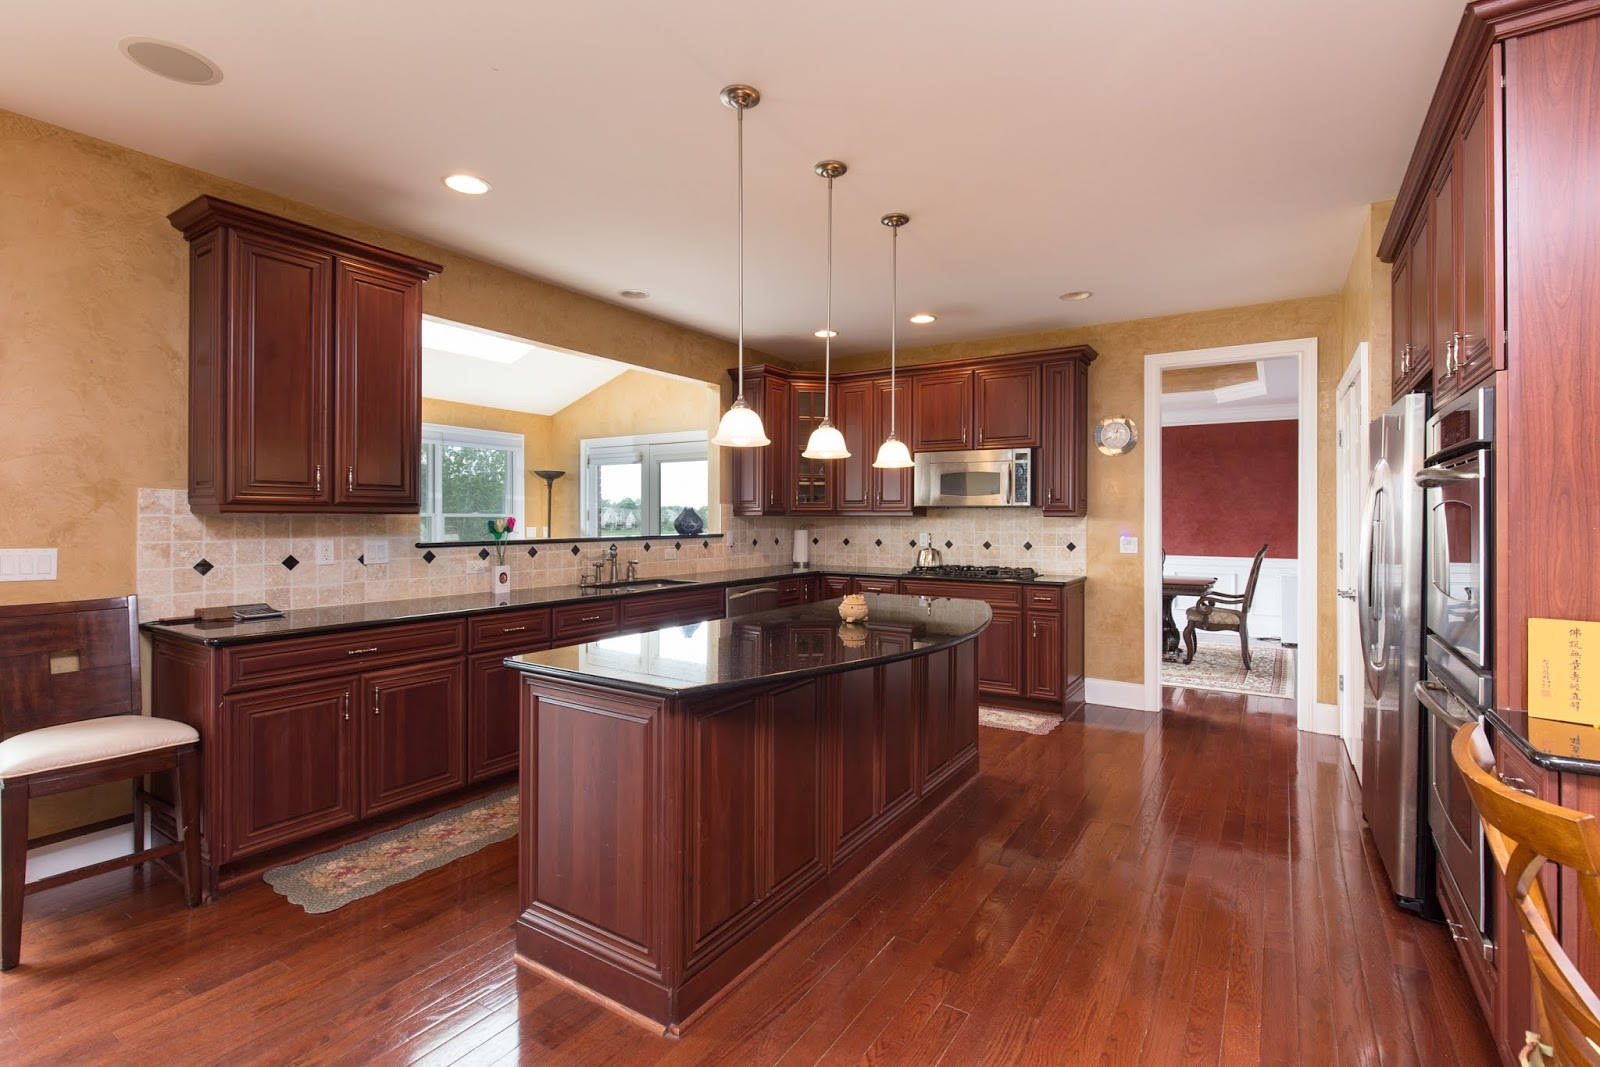 Interior kitchen real estate photography Northville, Canton, Novi, Farmington Hills, Plymouth